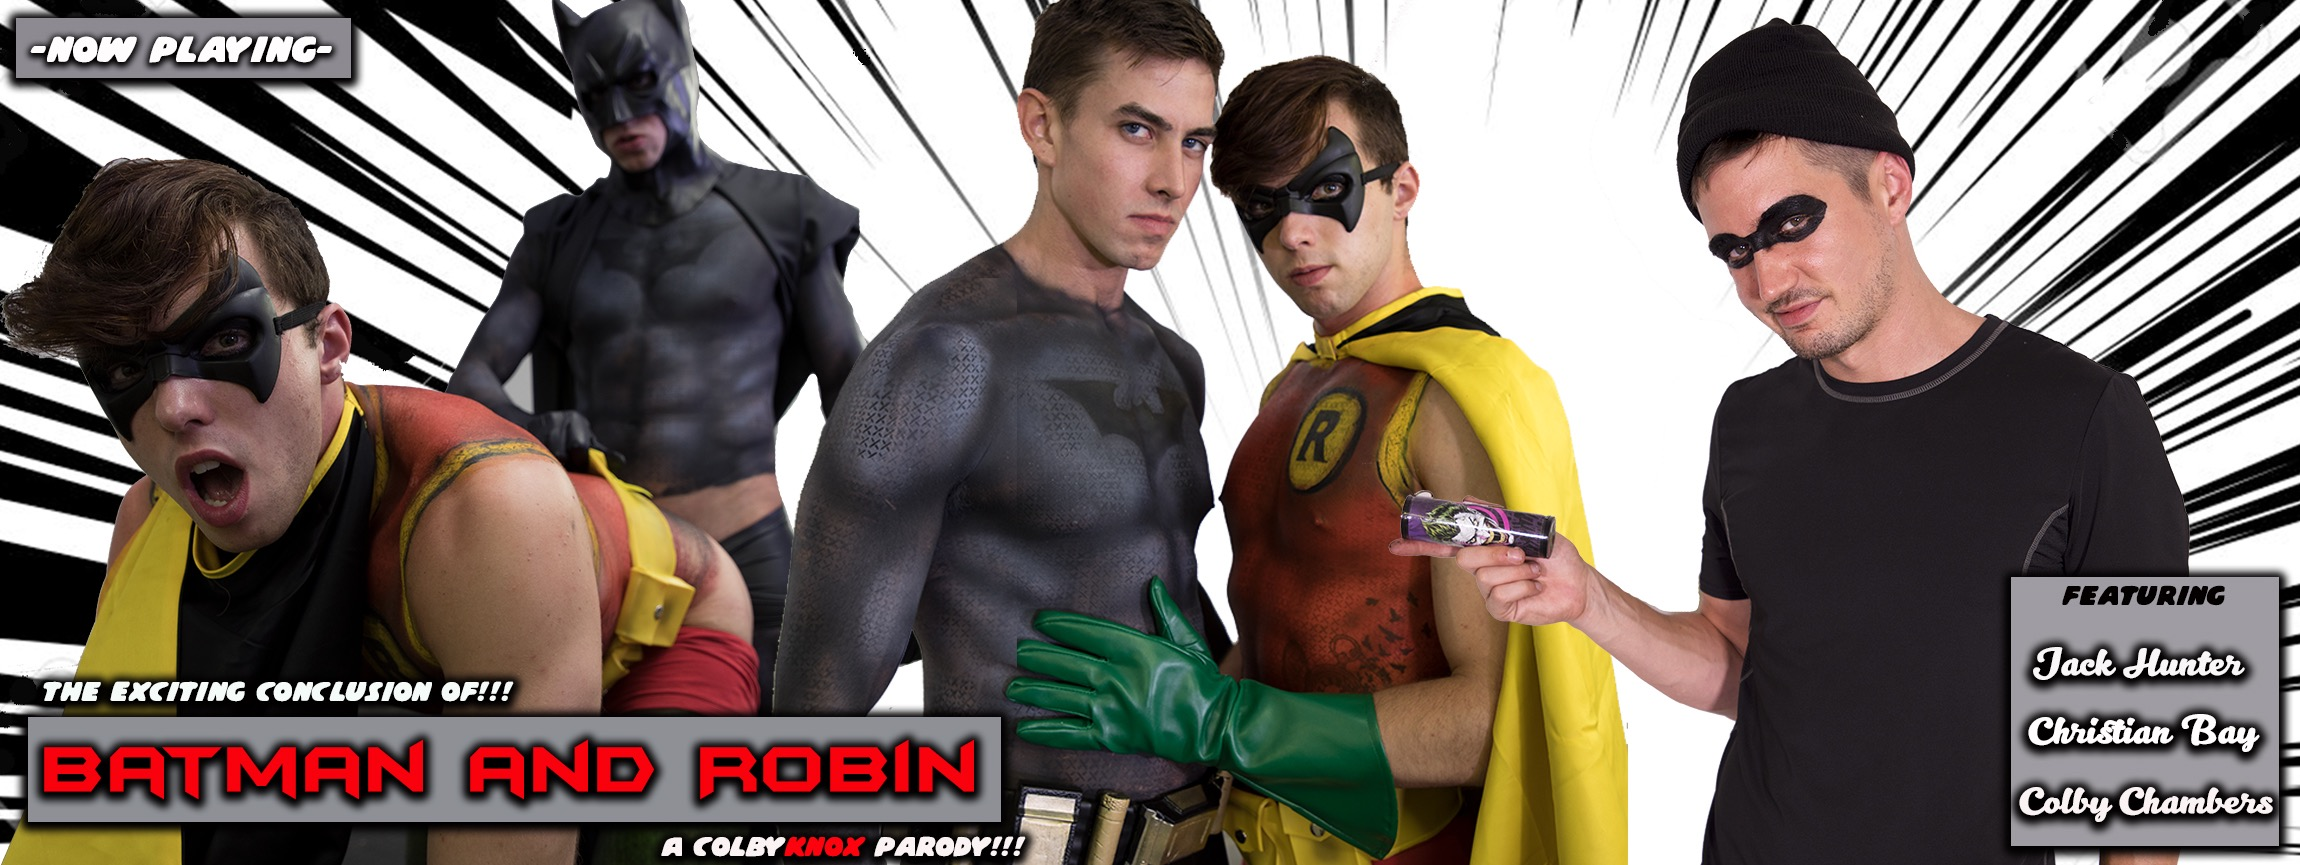 Batman and Robin 3